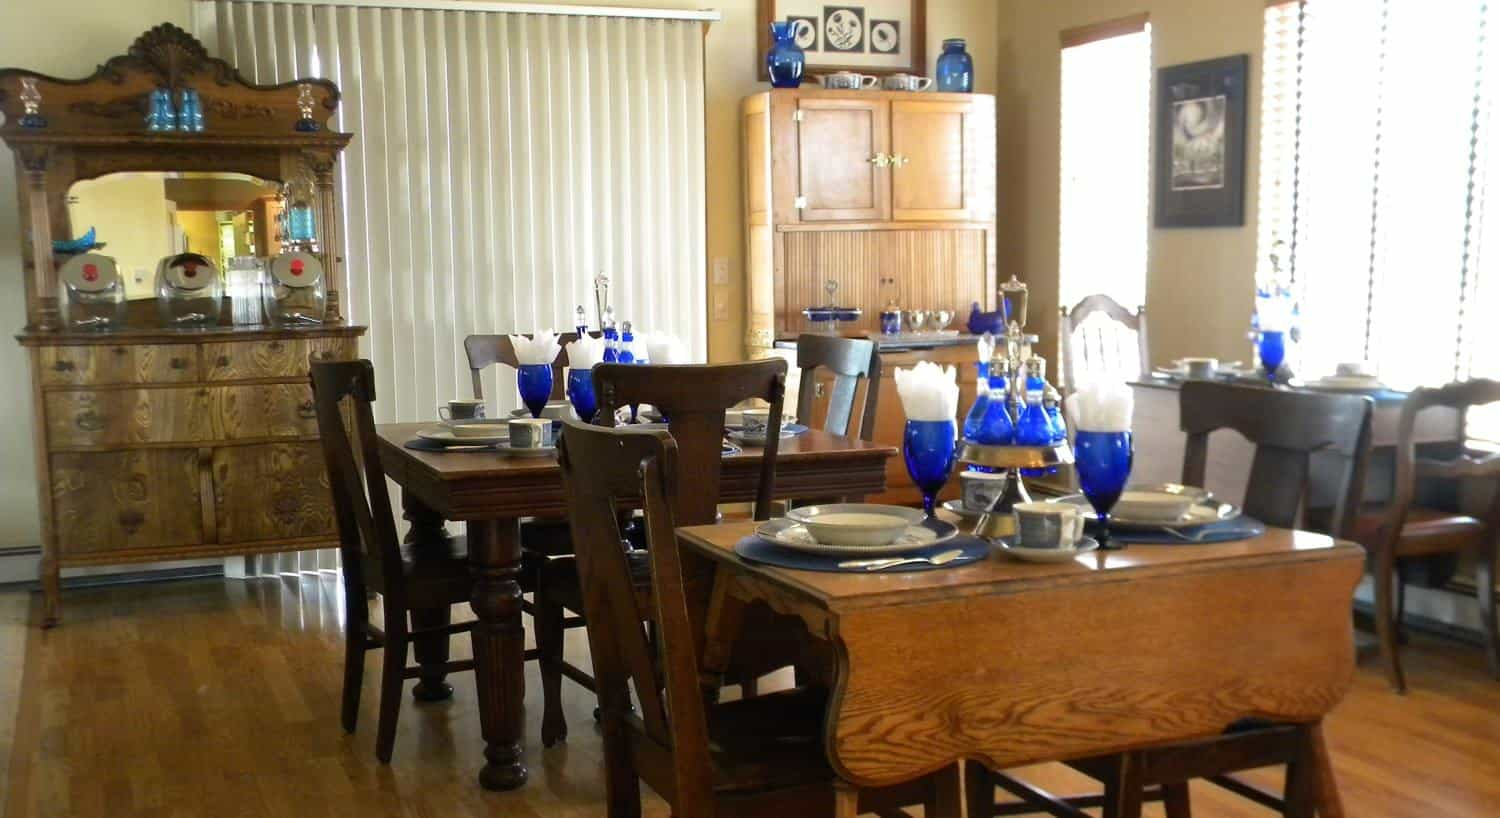 Dining room with brown wooden tables and chairs with blue and white place settings and blue glasses